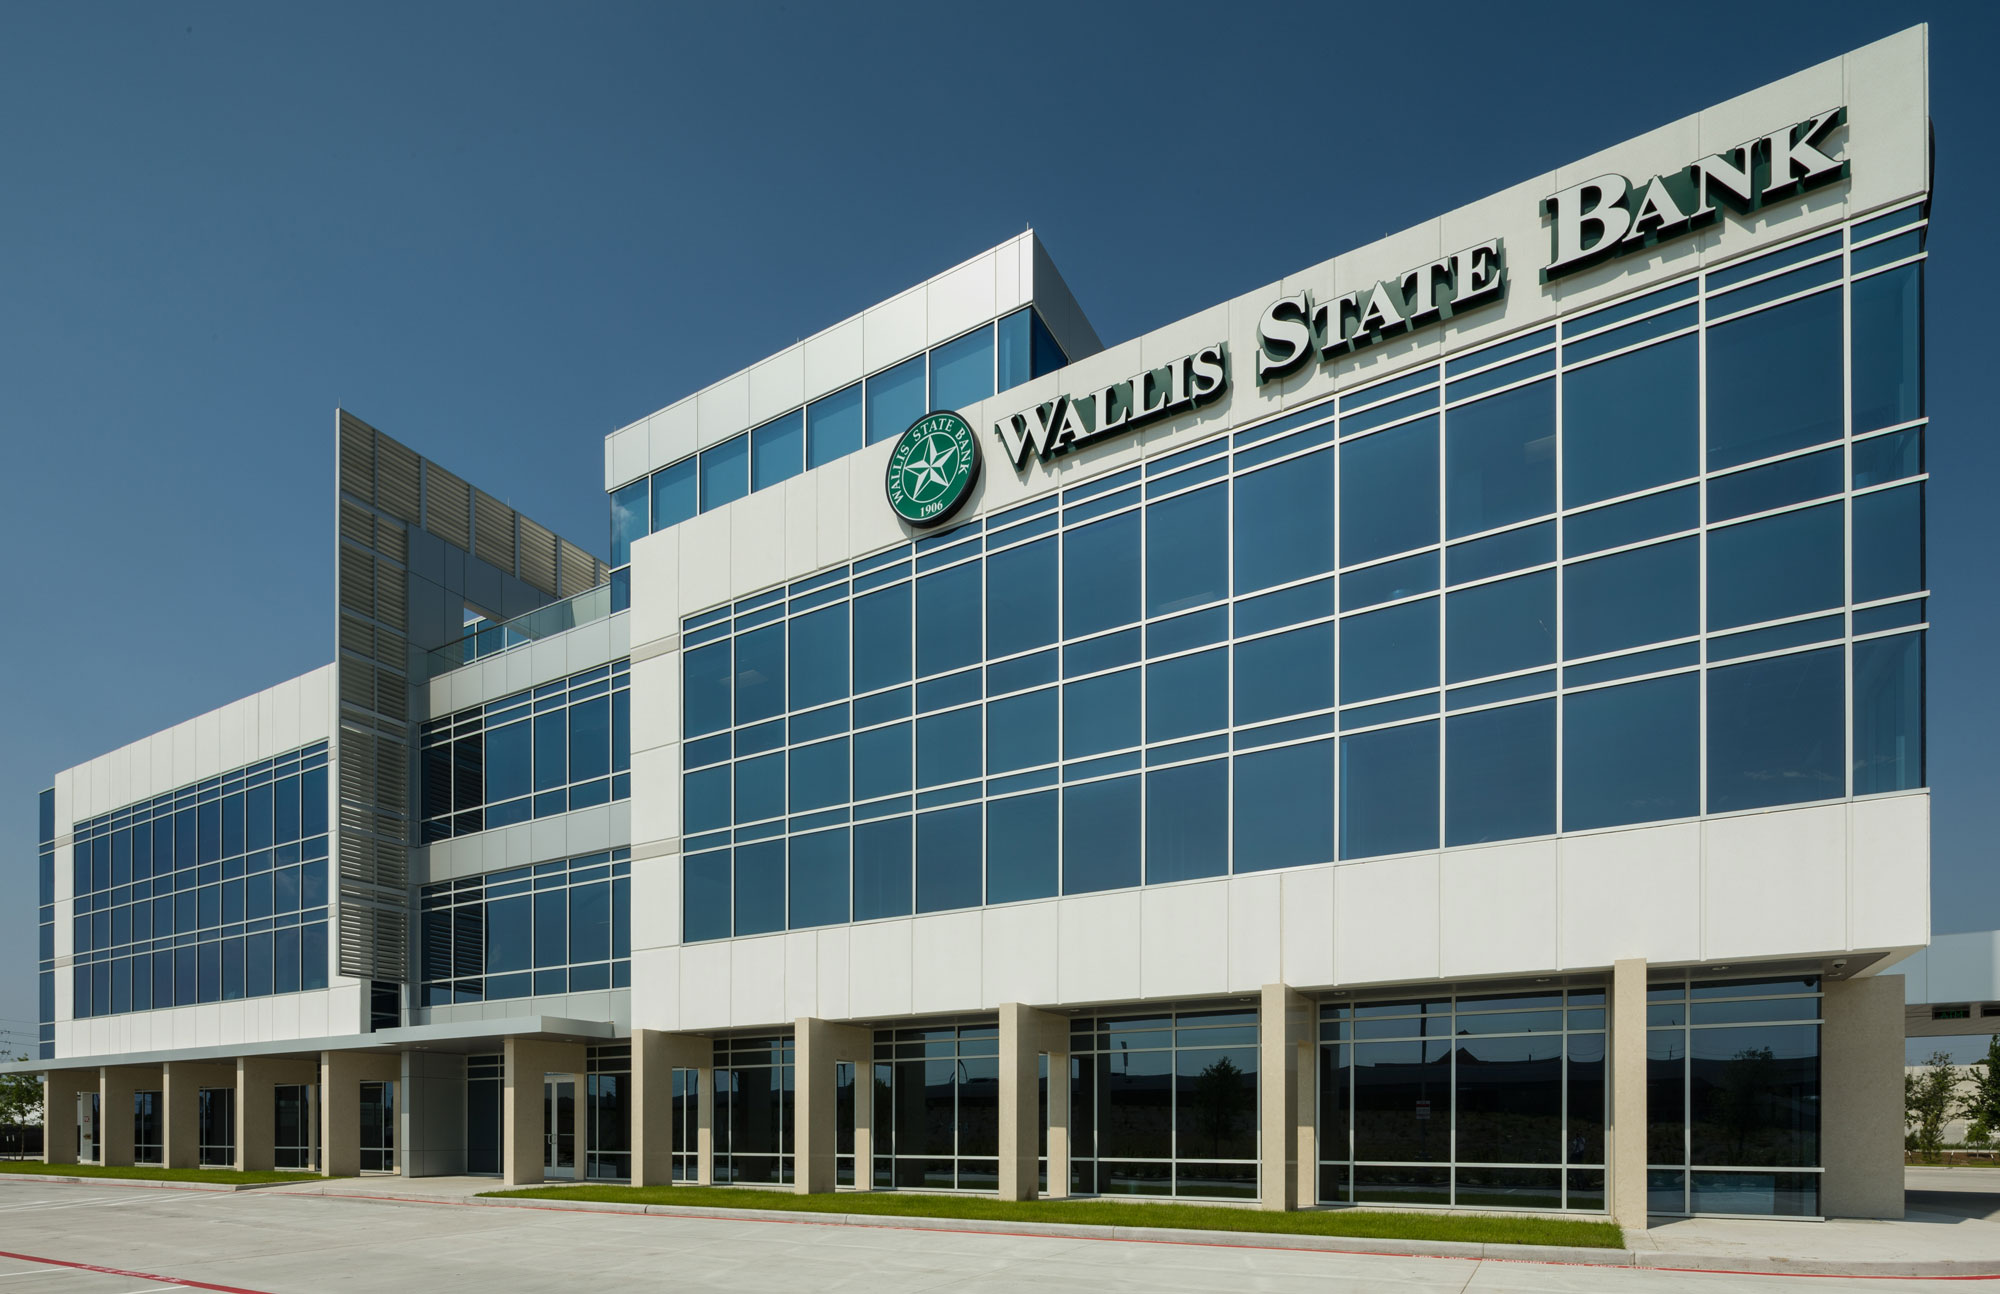 Wallis-State-Bank